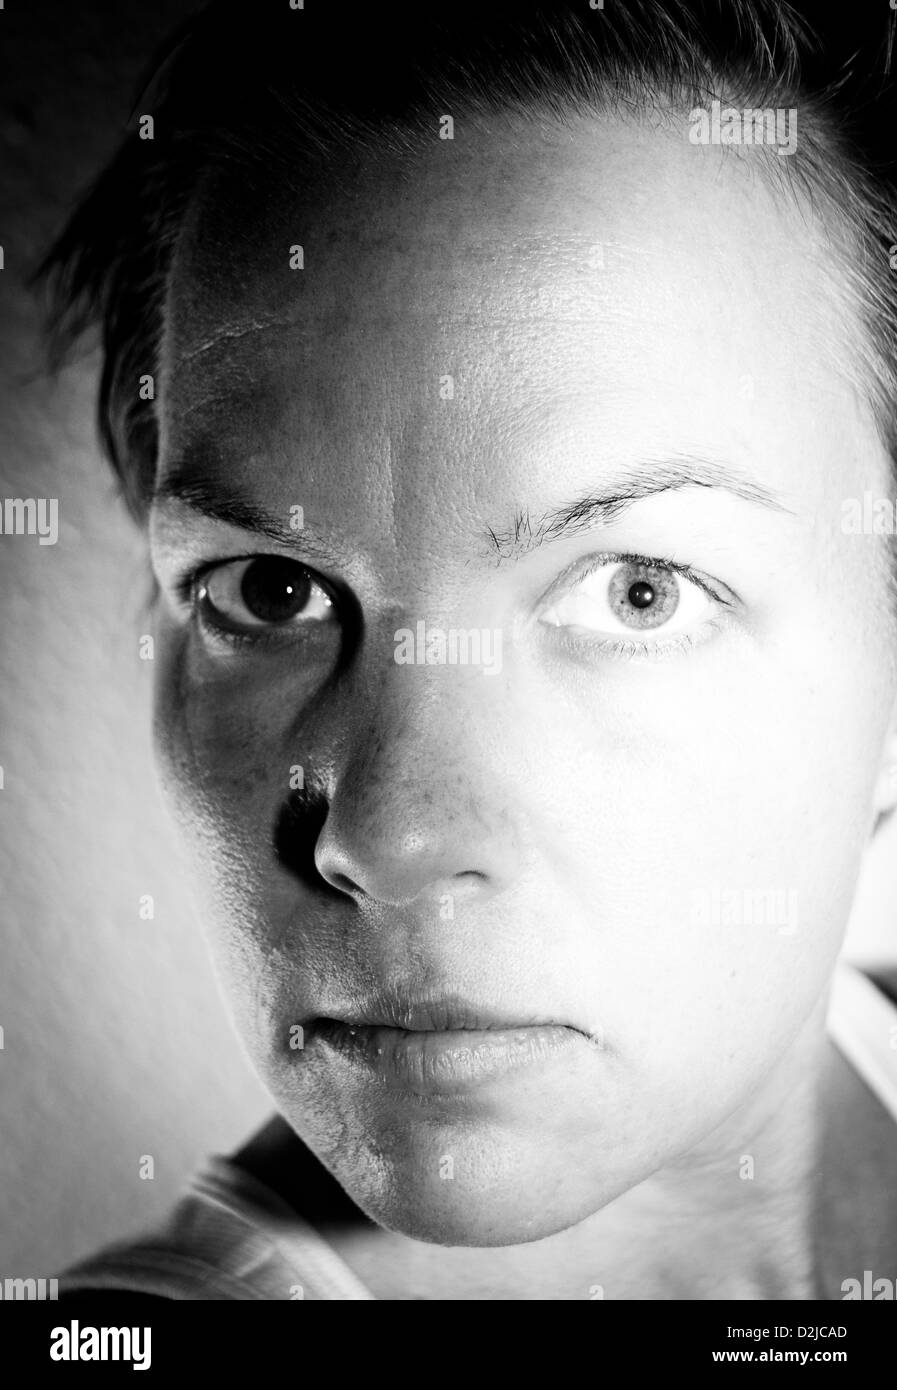 A black and white self portrait of a woman who portrays the darkness and light of an individual self. - Stock Image